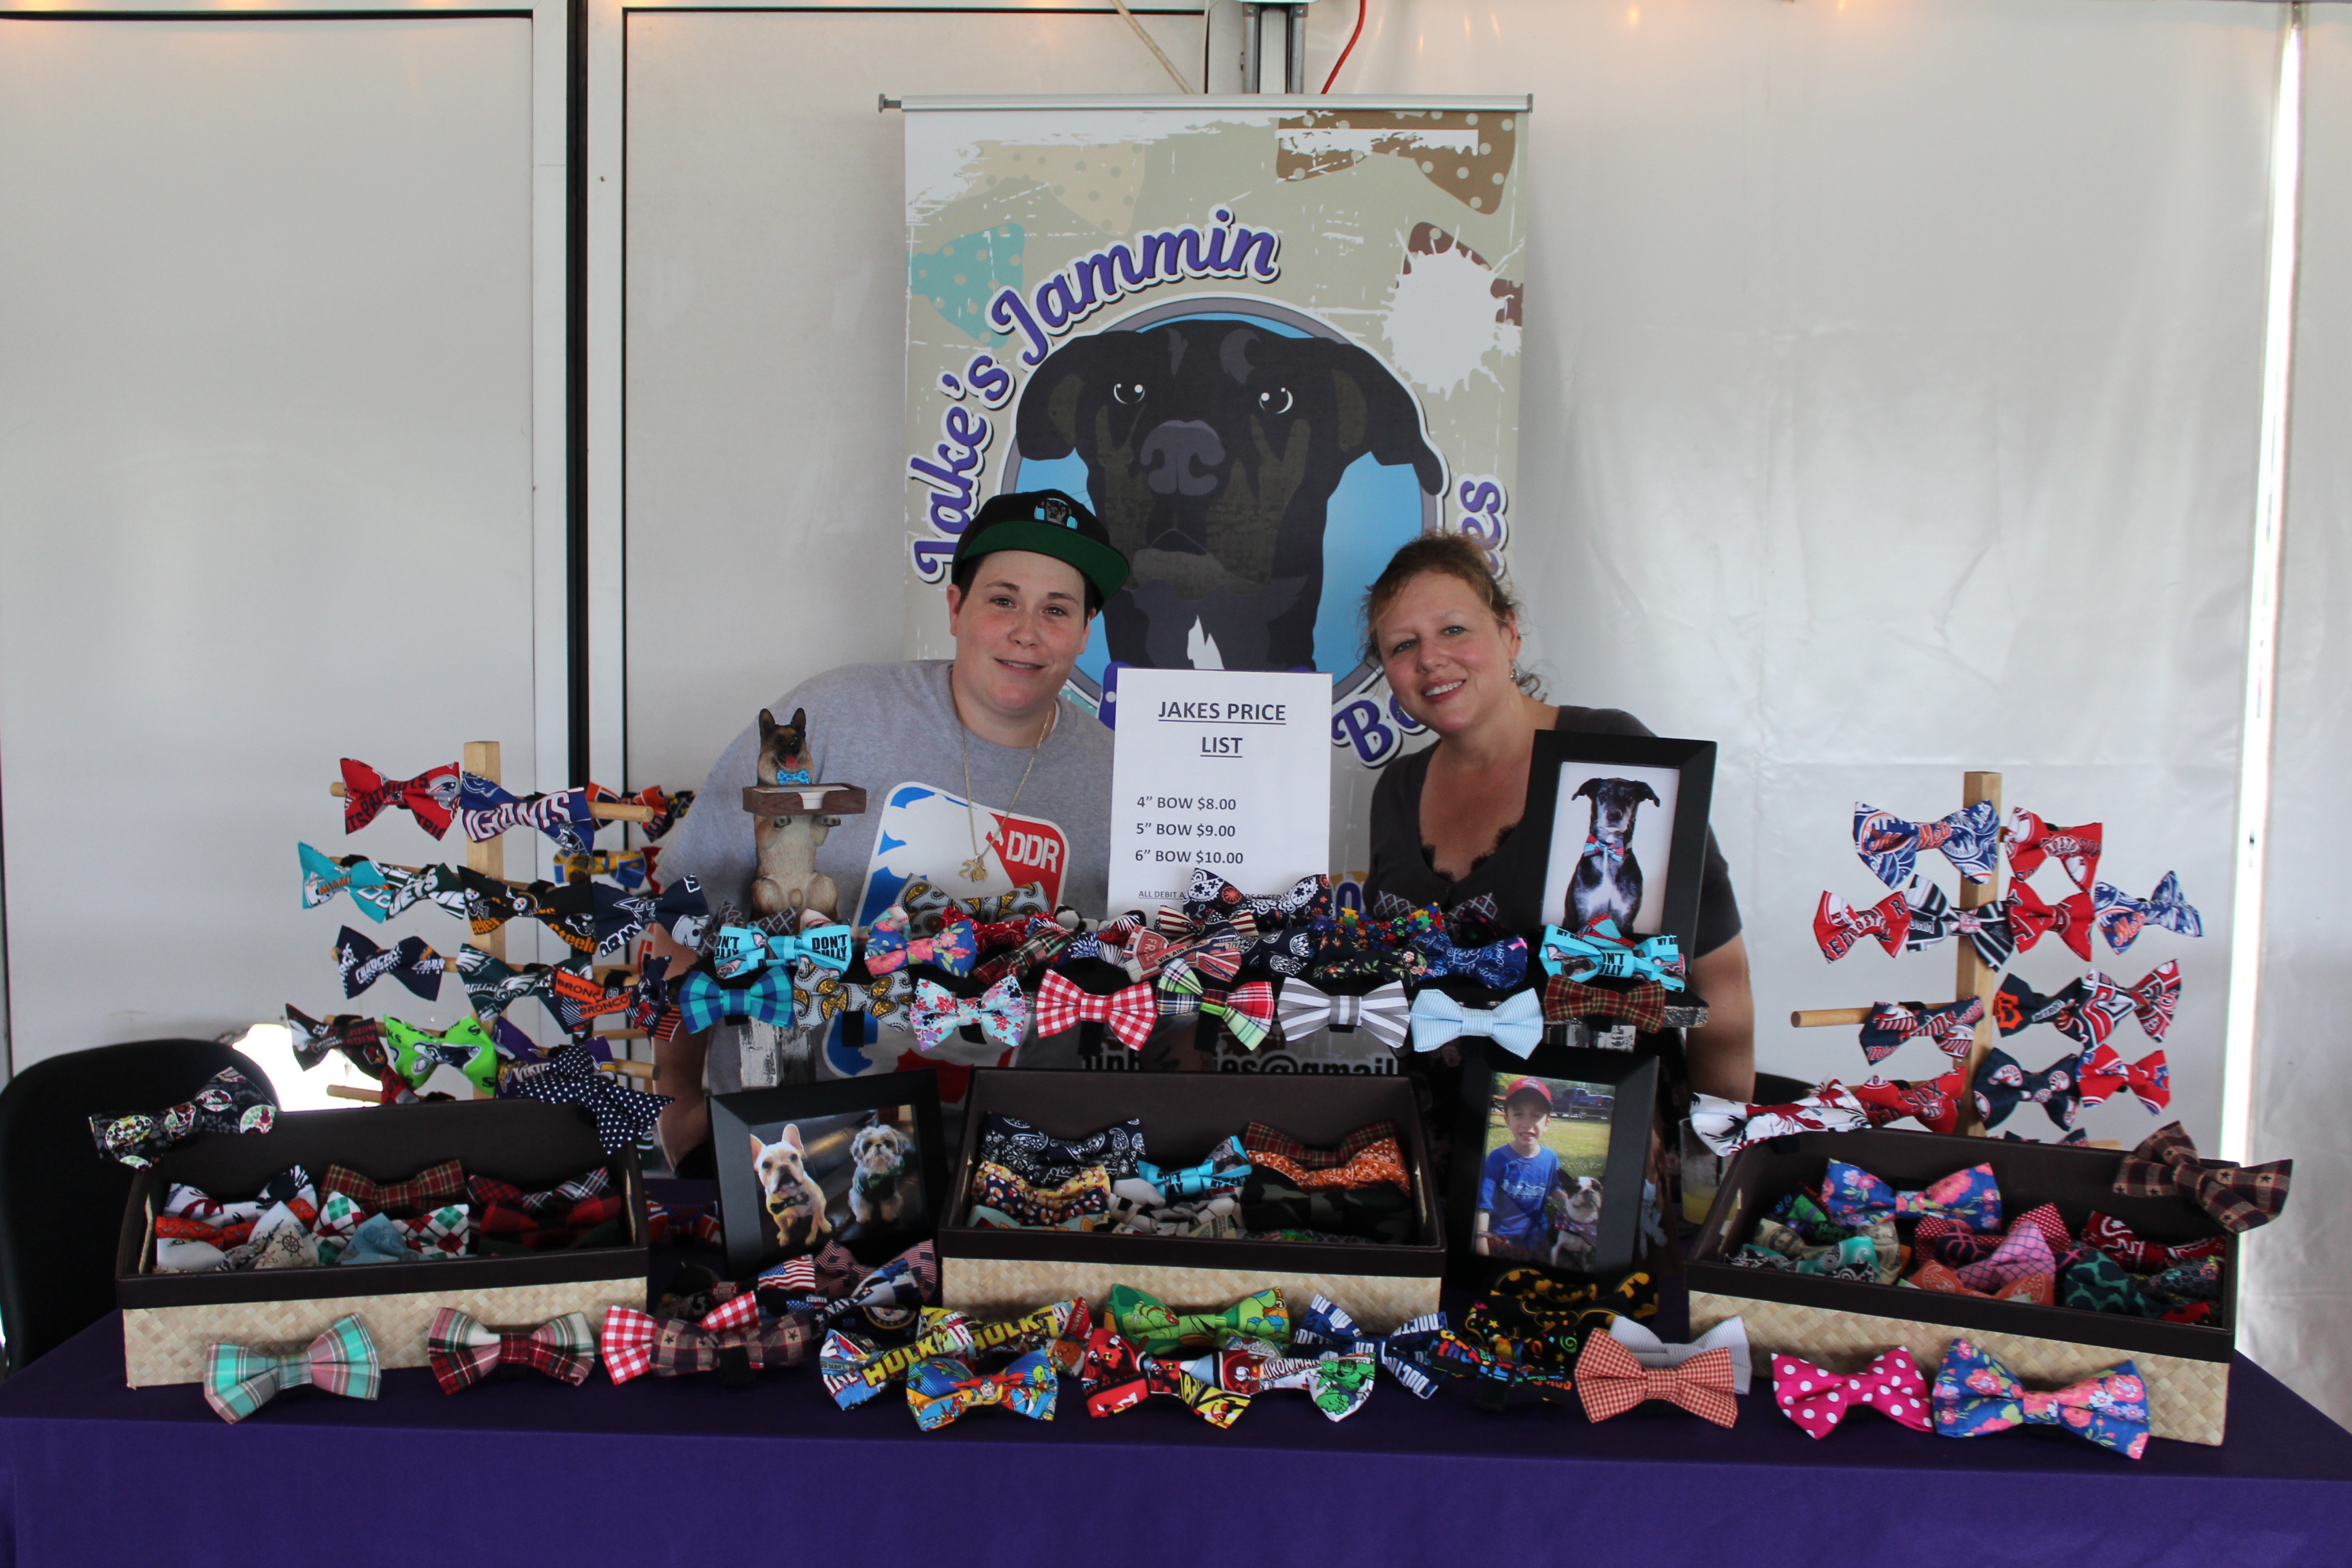 Jake's Jammin Bowties vendor at the Saratoga Dog & Pony Show to benefit AIM Services, Inc.